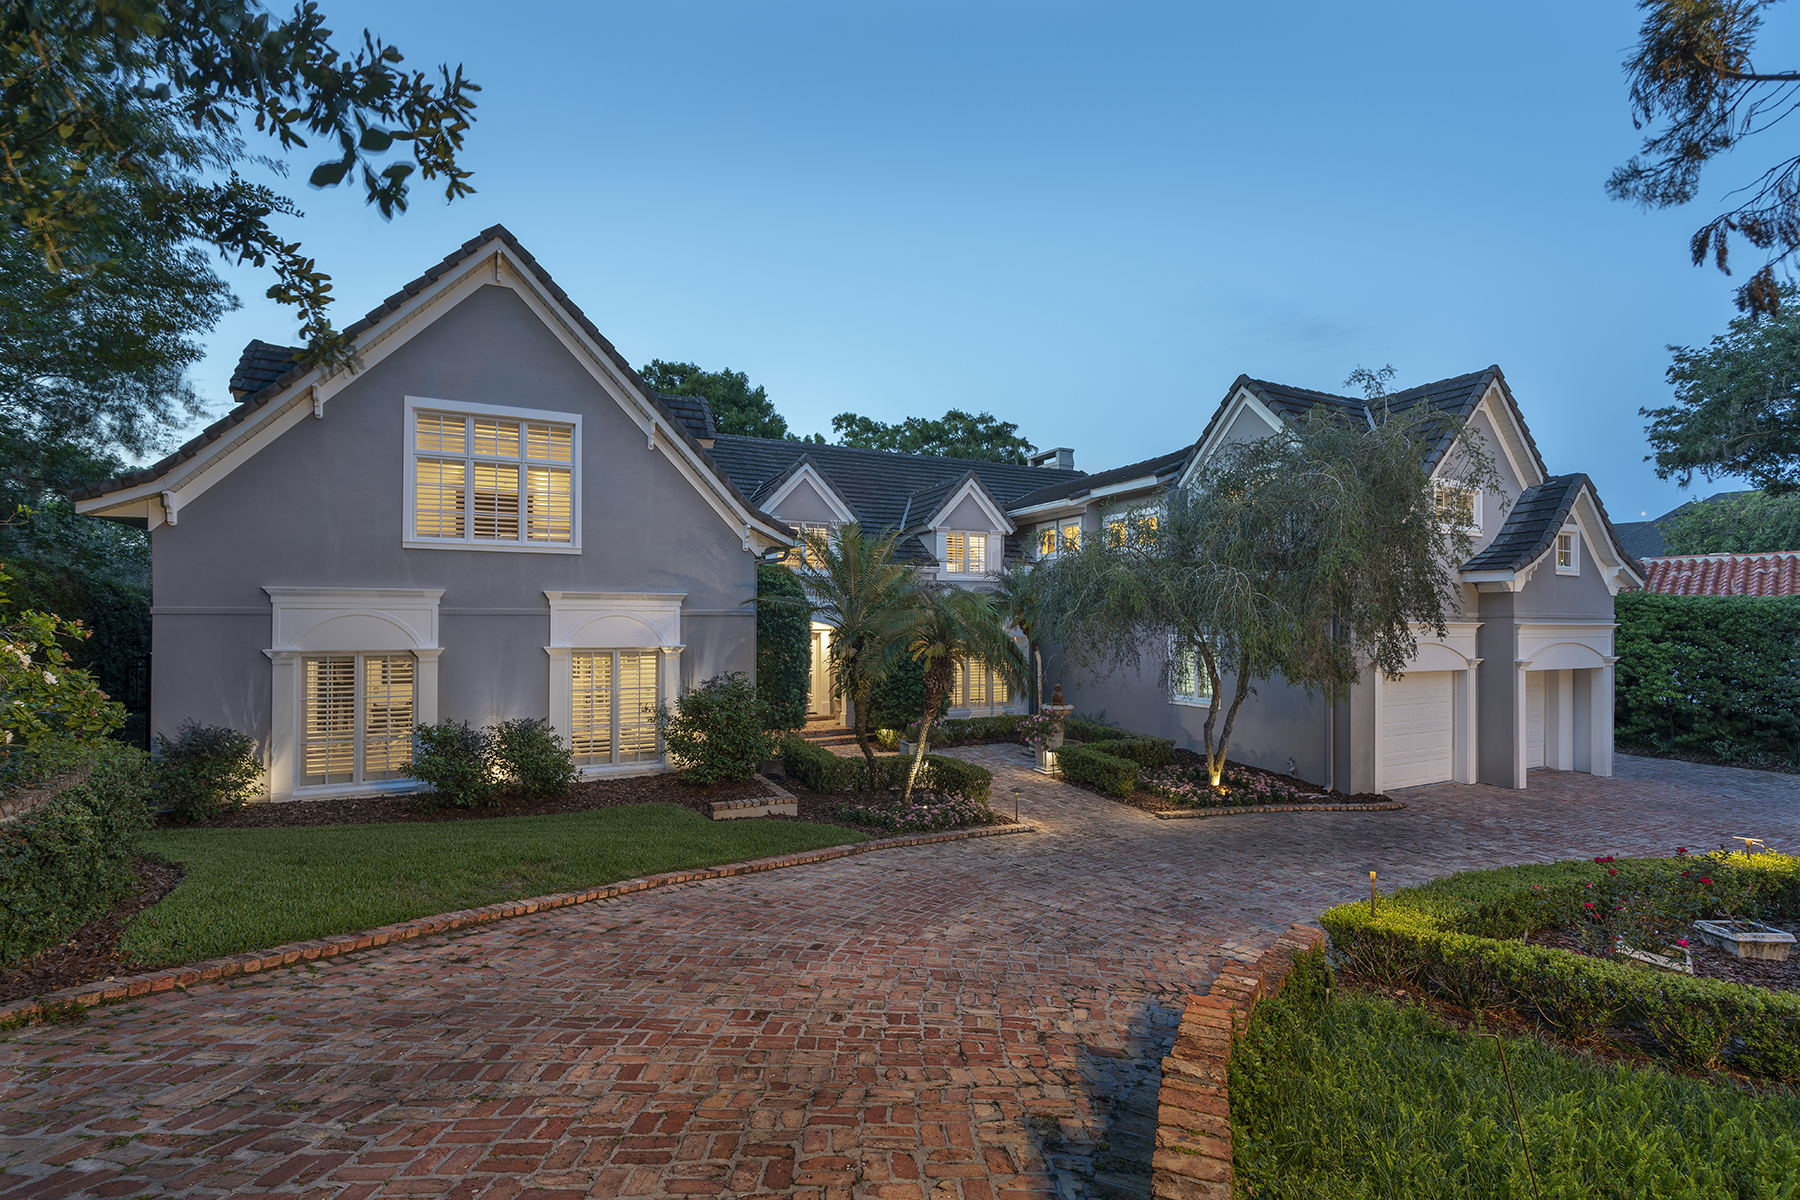 single family homes for Active at WINTER PARK 375 Virginia Dr Winter Park, Florida 32789 United States